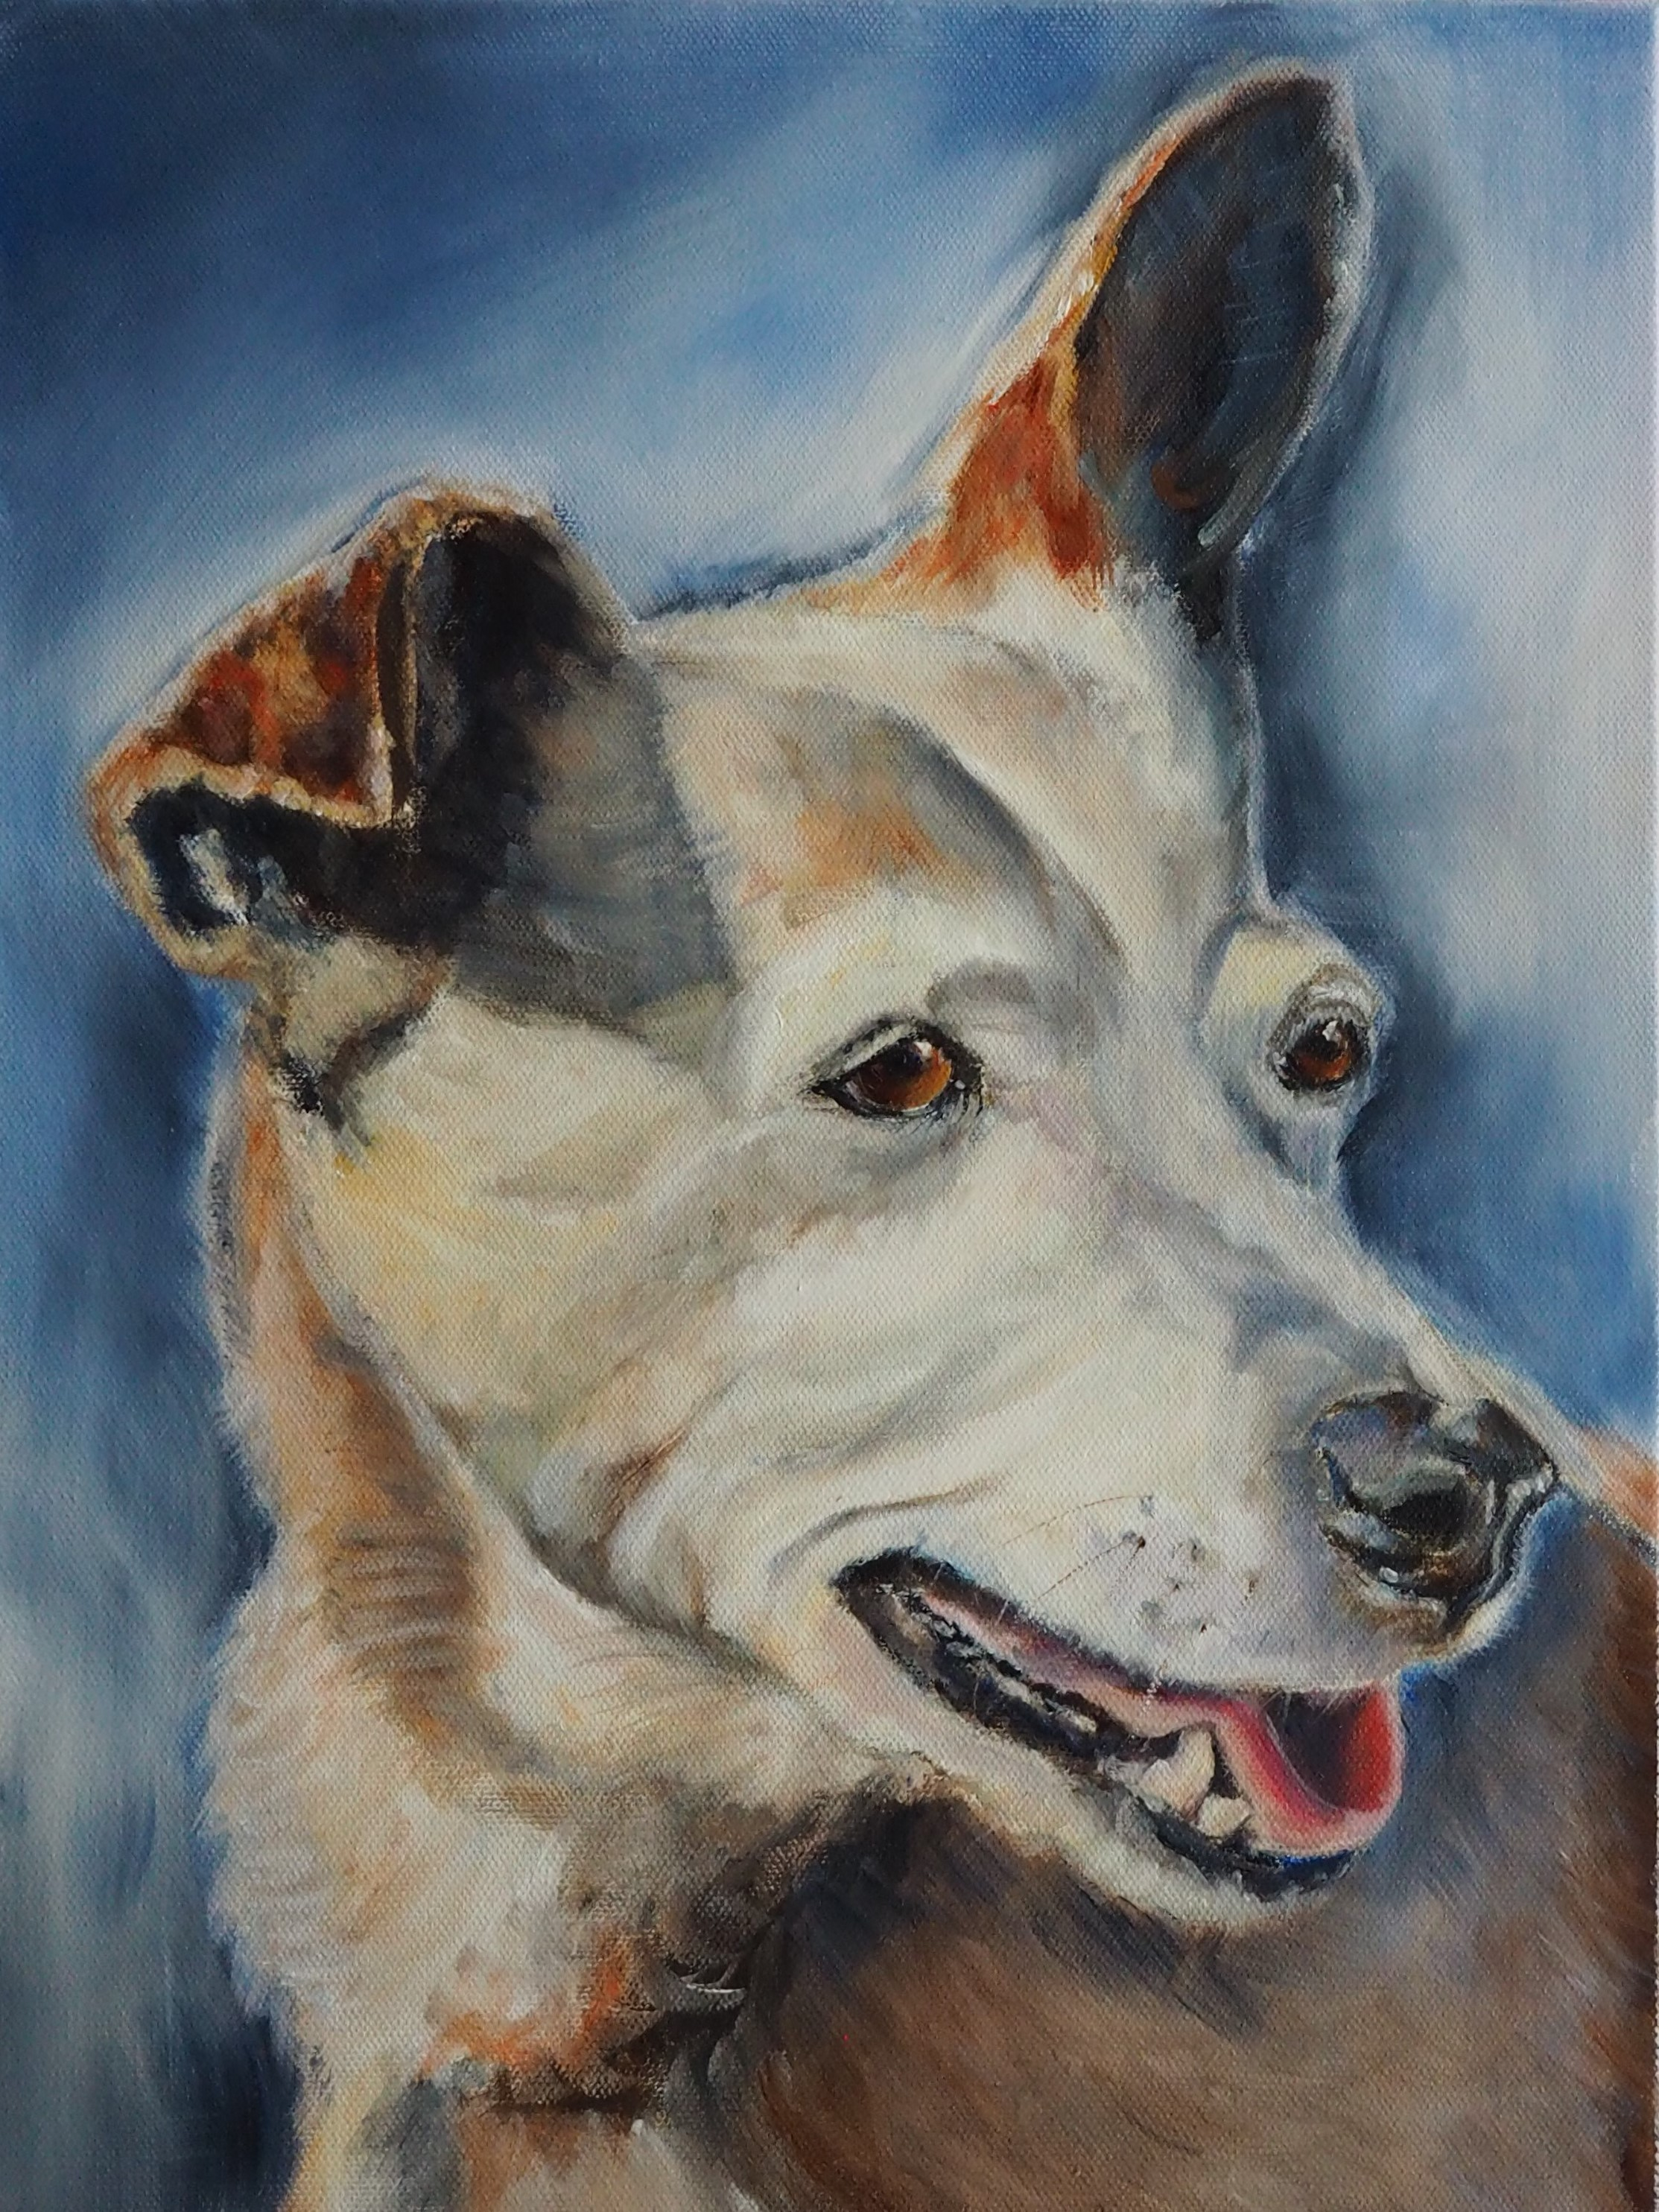 DOG PAINTING MEMORIAL IN OILS OF FOX TERRIER NAMED GOLDIE BY OPAL PASTRO ART